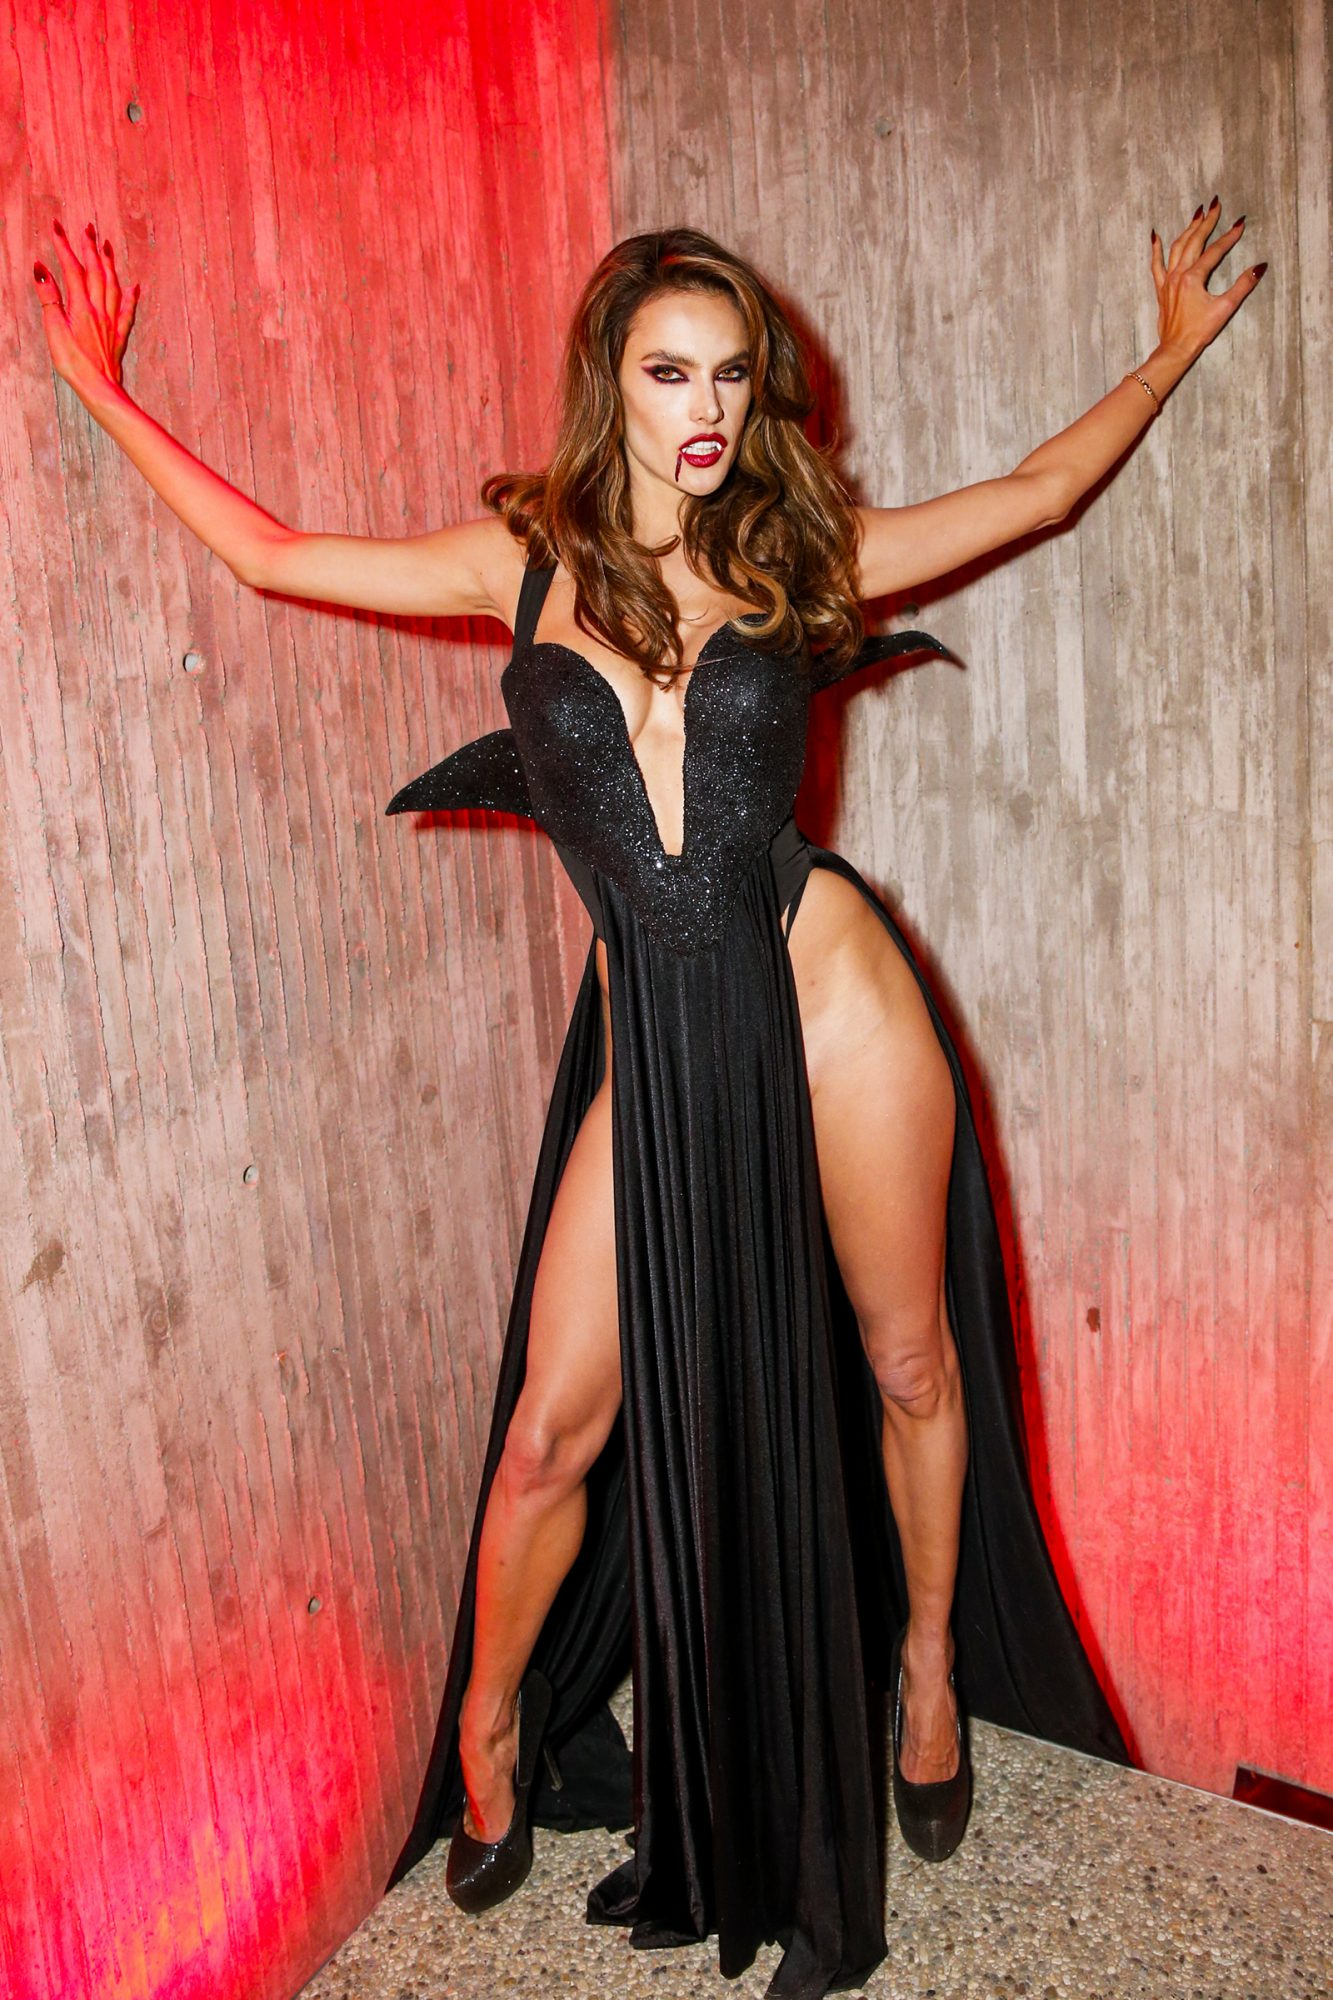 The supermodel sizzled as a sexy vampire.